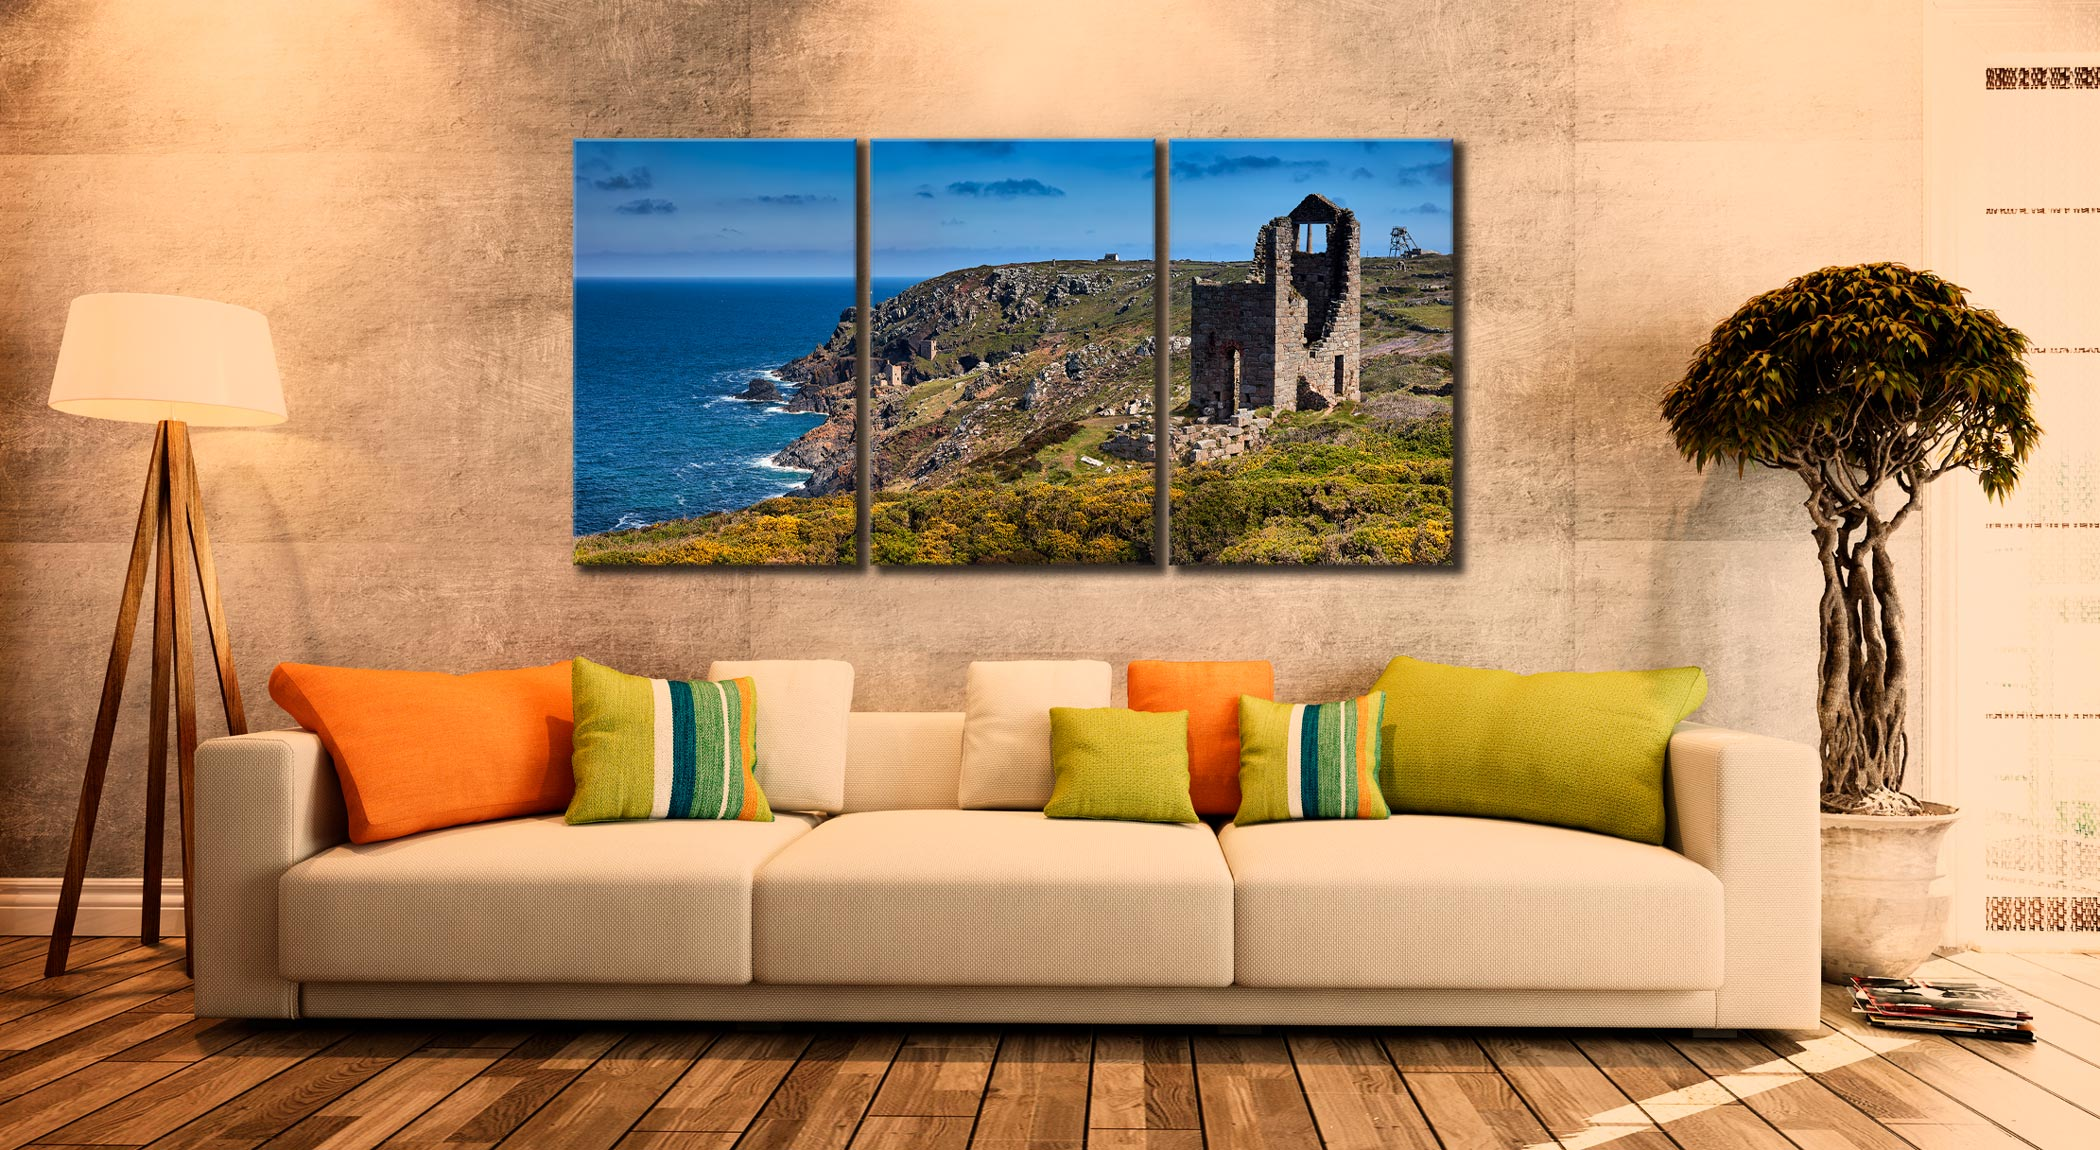 Mining Coast of Botallack - 3 Panel Canvas on Wall